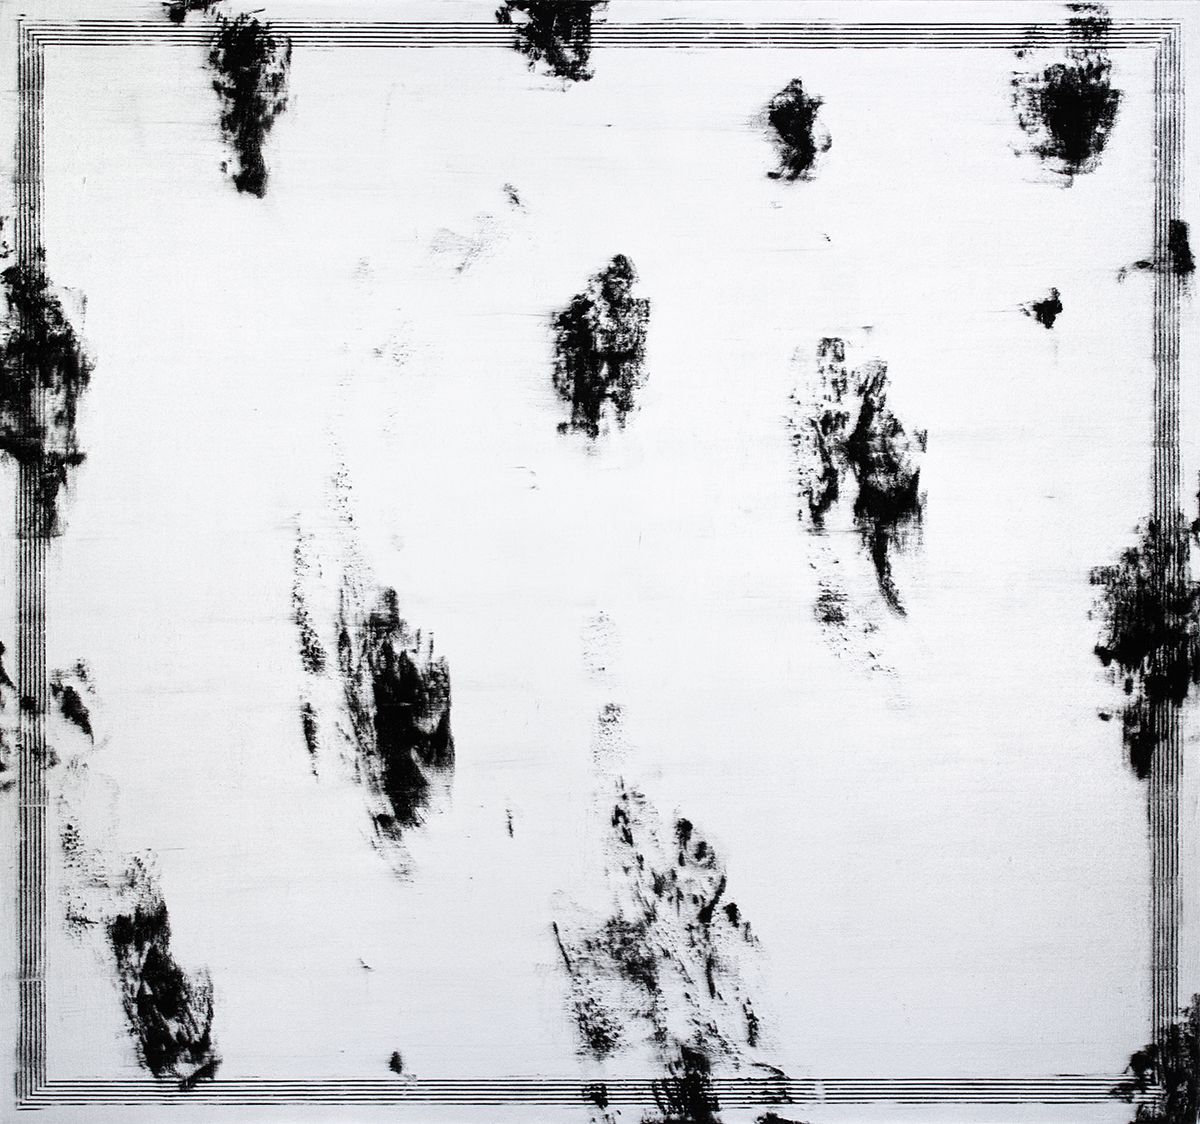 Jacqueline Humphries  Untitled, 2012  Oil on linen  90 x 96 inches (228.6 x 243.8 cm)